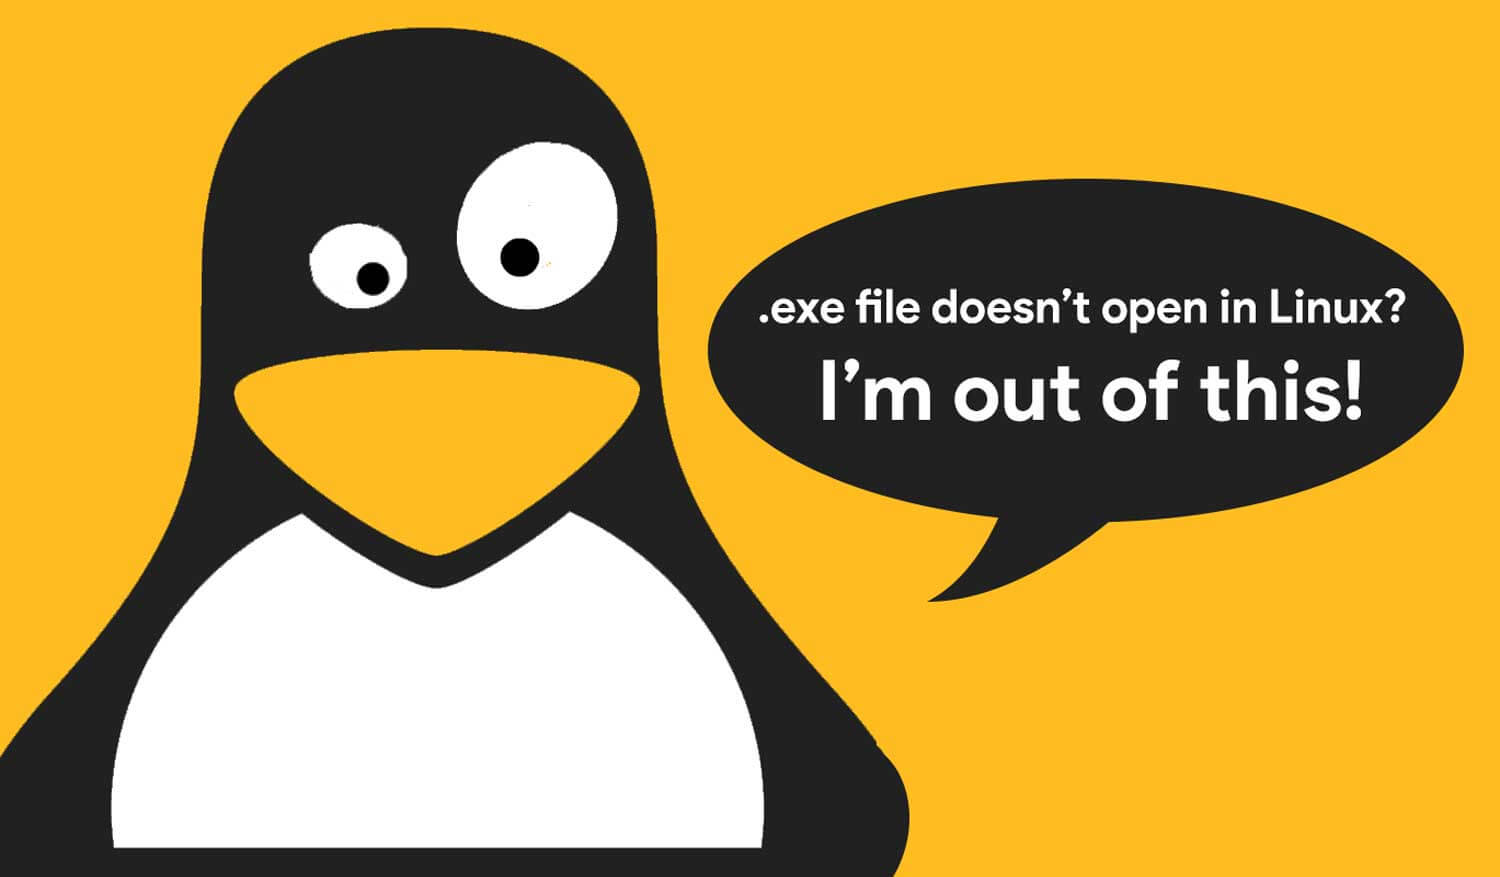 how to run an exe file on linux